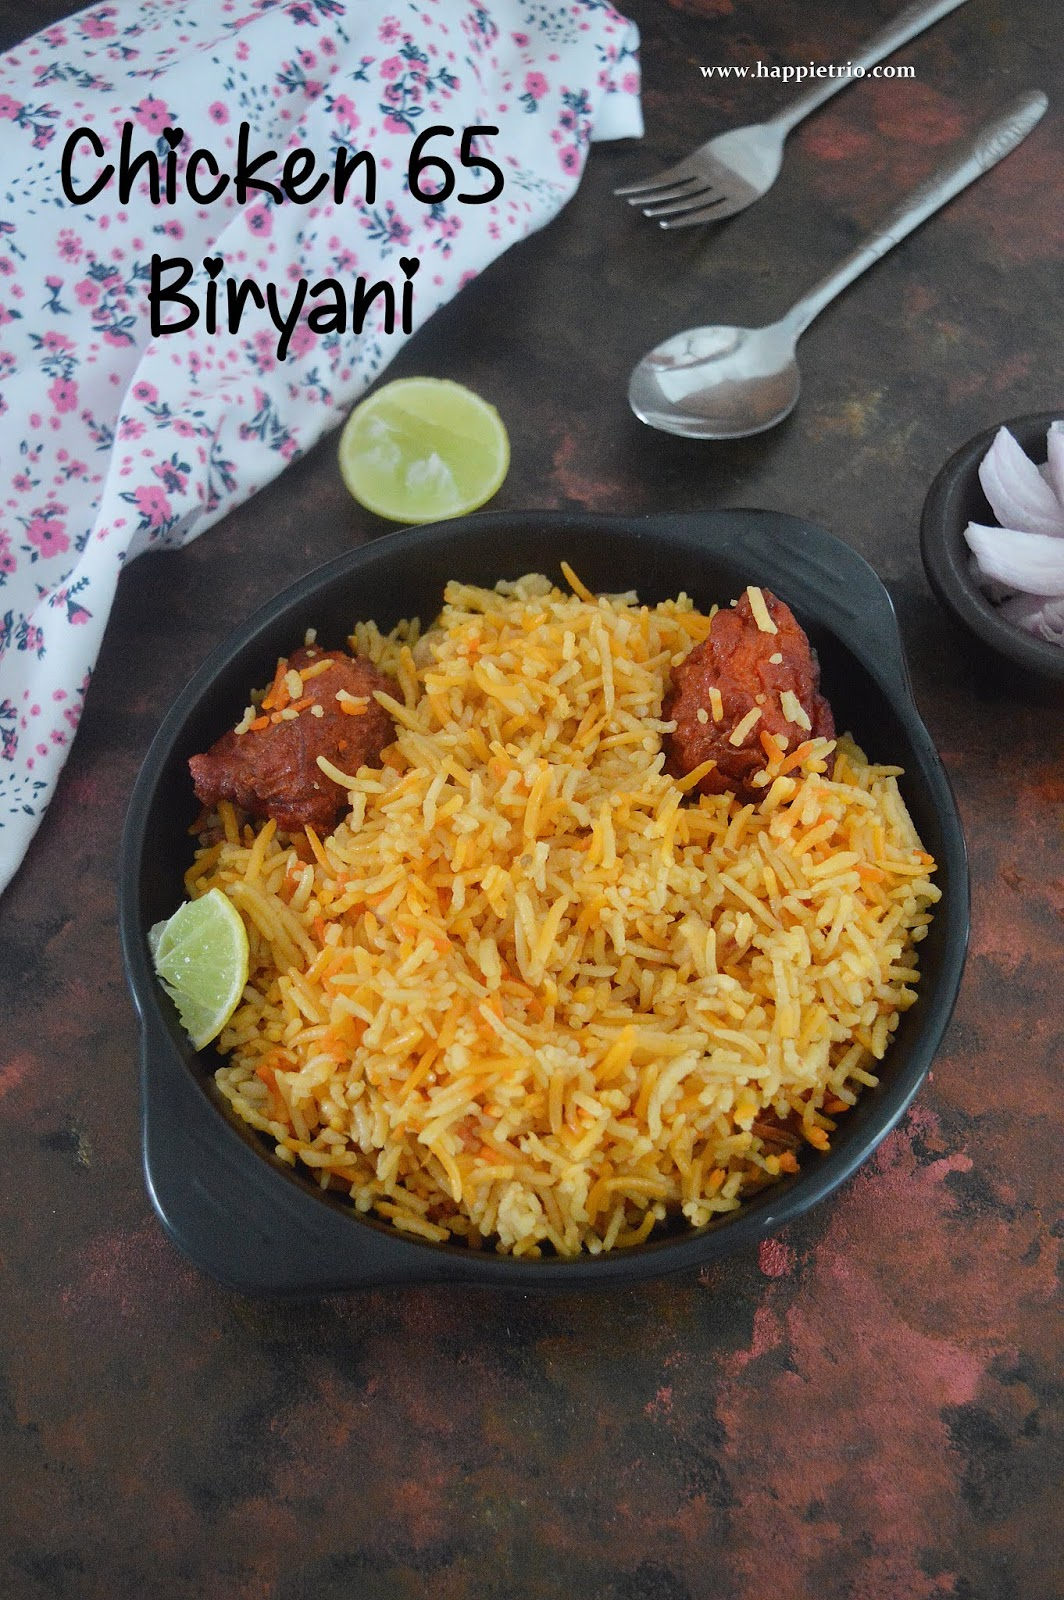 Chicken 65 Biriyani Recipe | How to cook Chicken 65 Biryani.